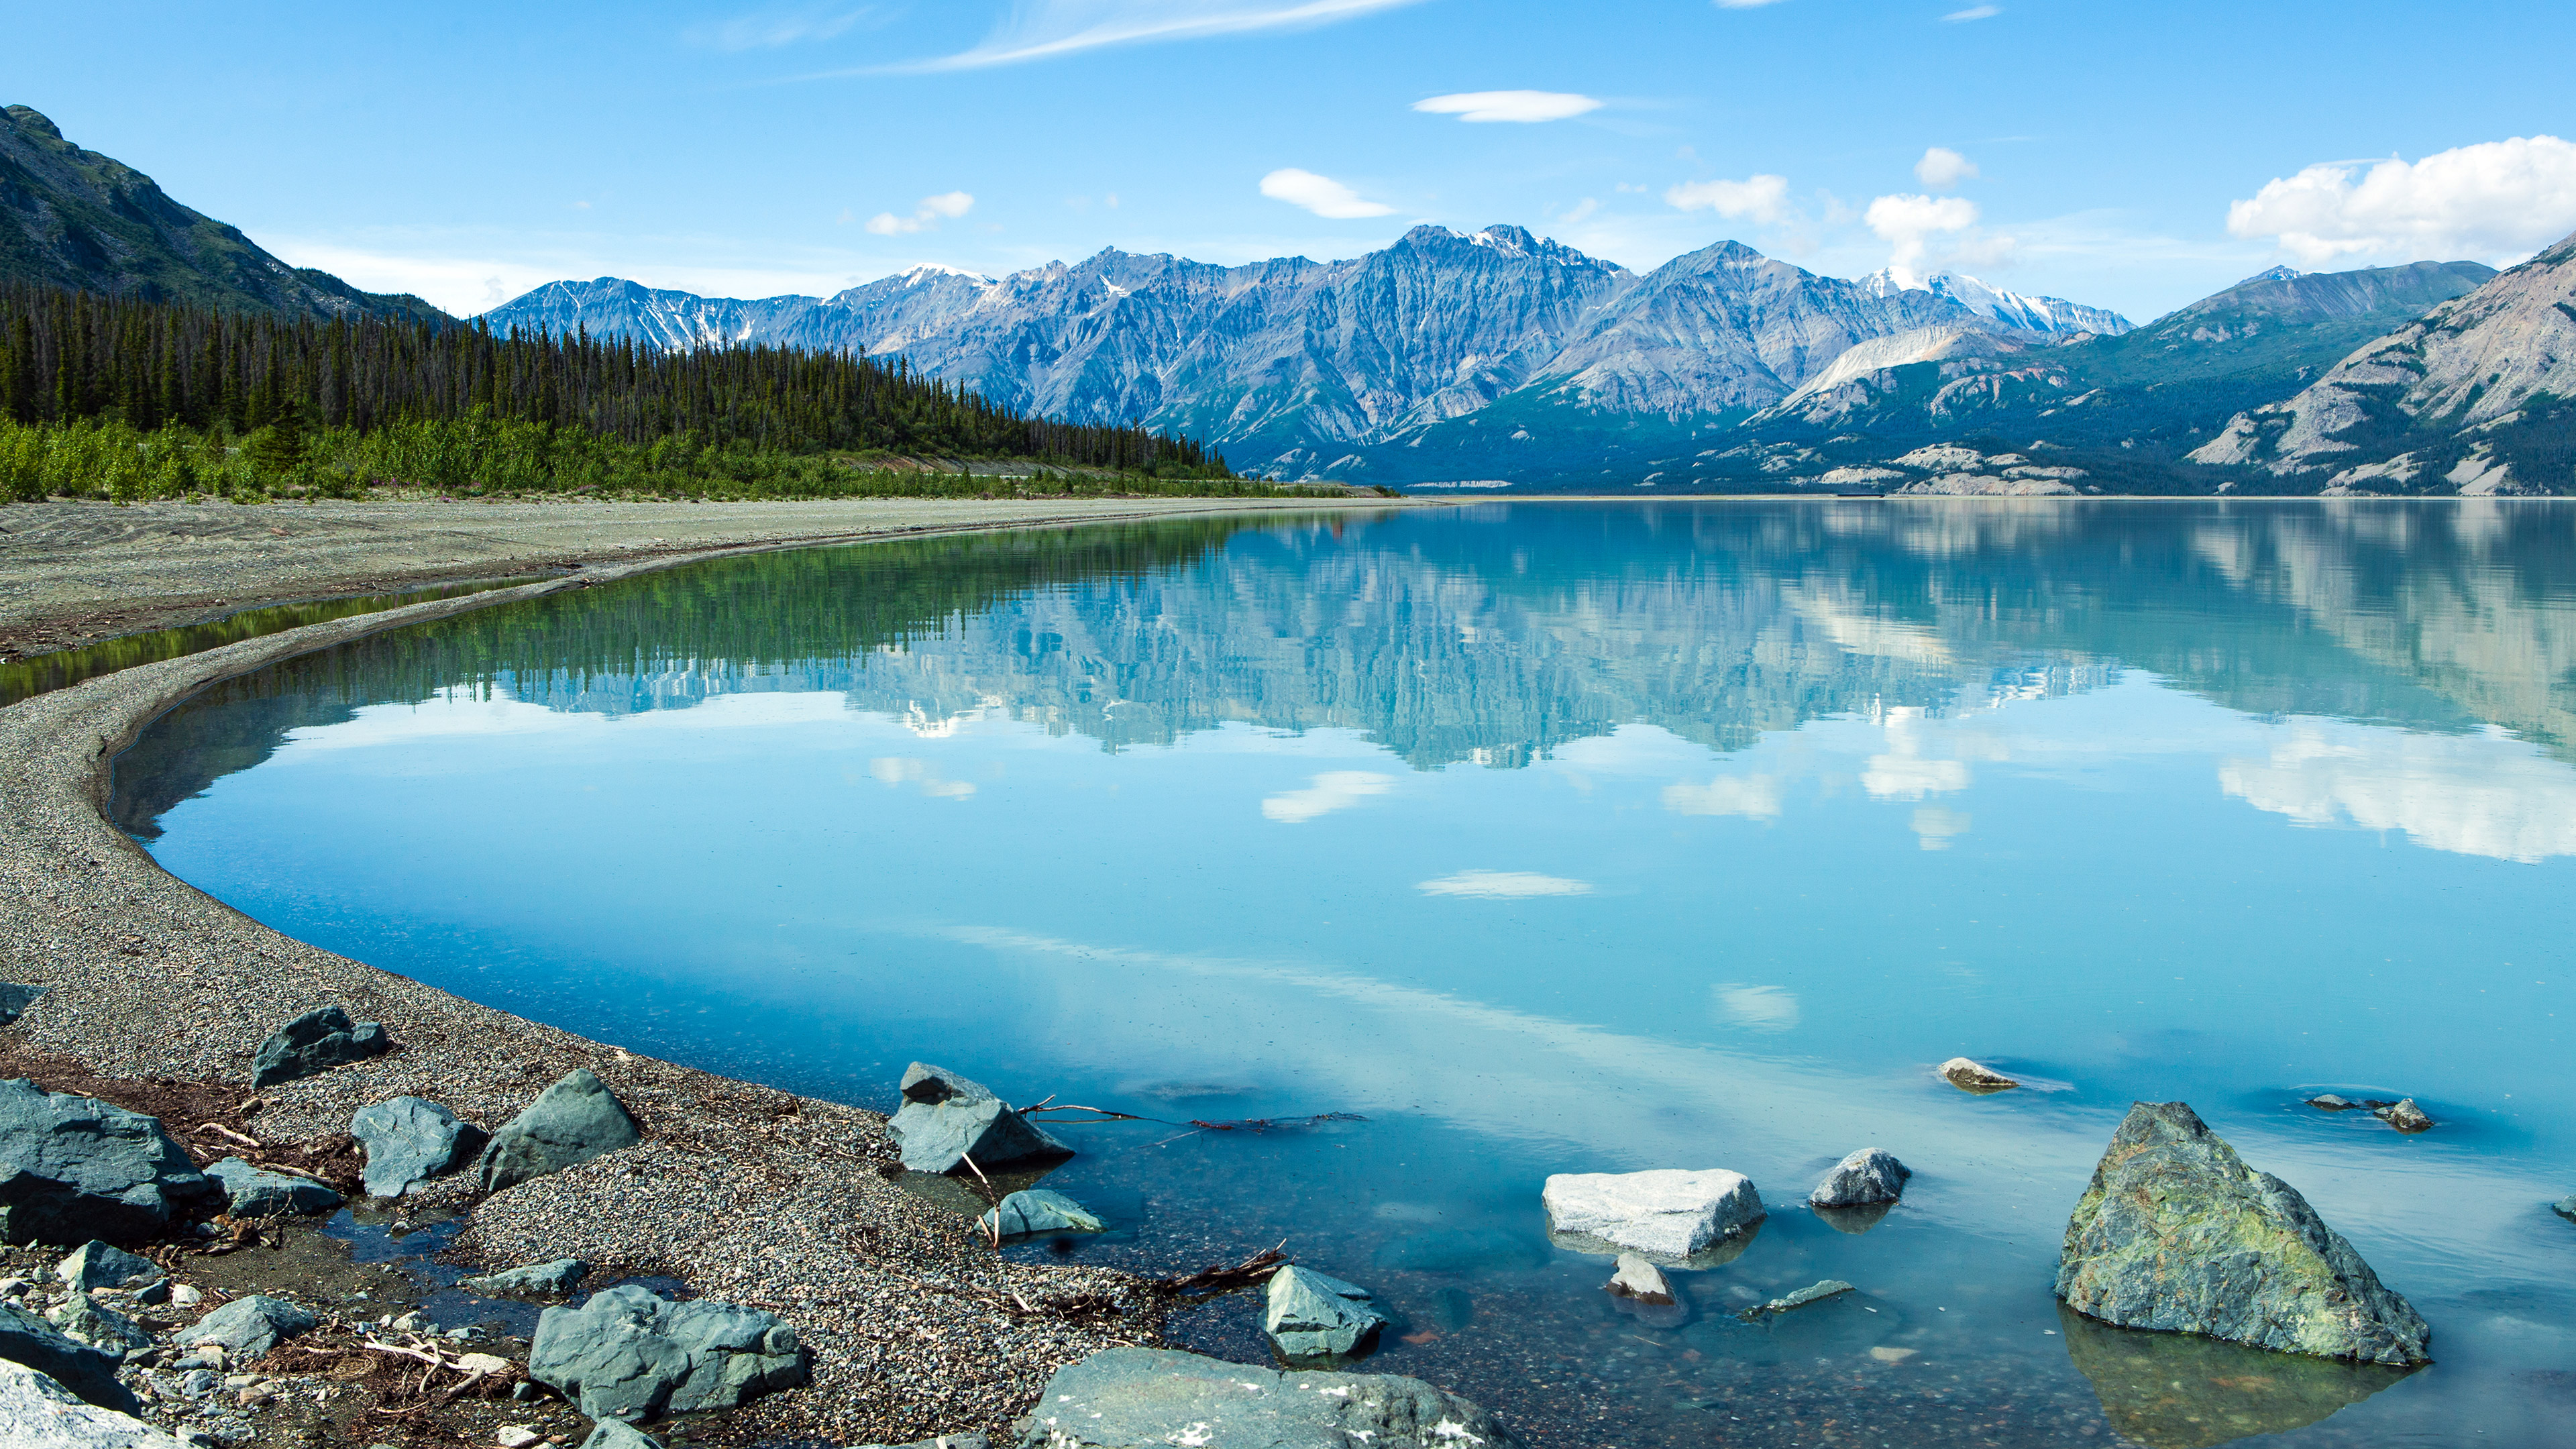 Yukon Canada Hd Nature 4k Wallpapers Images Backgrounds Photos And Pictures